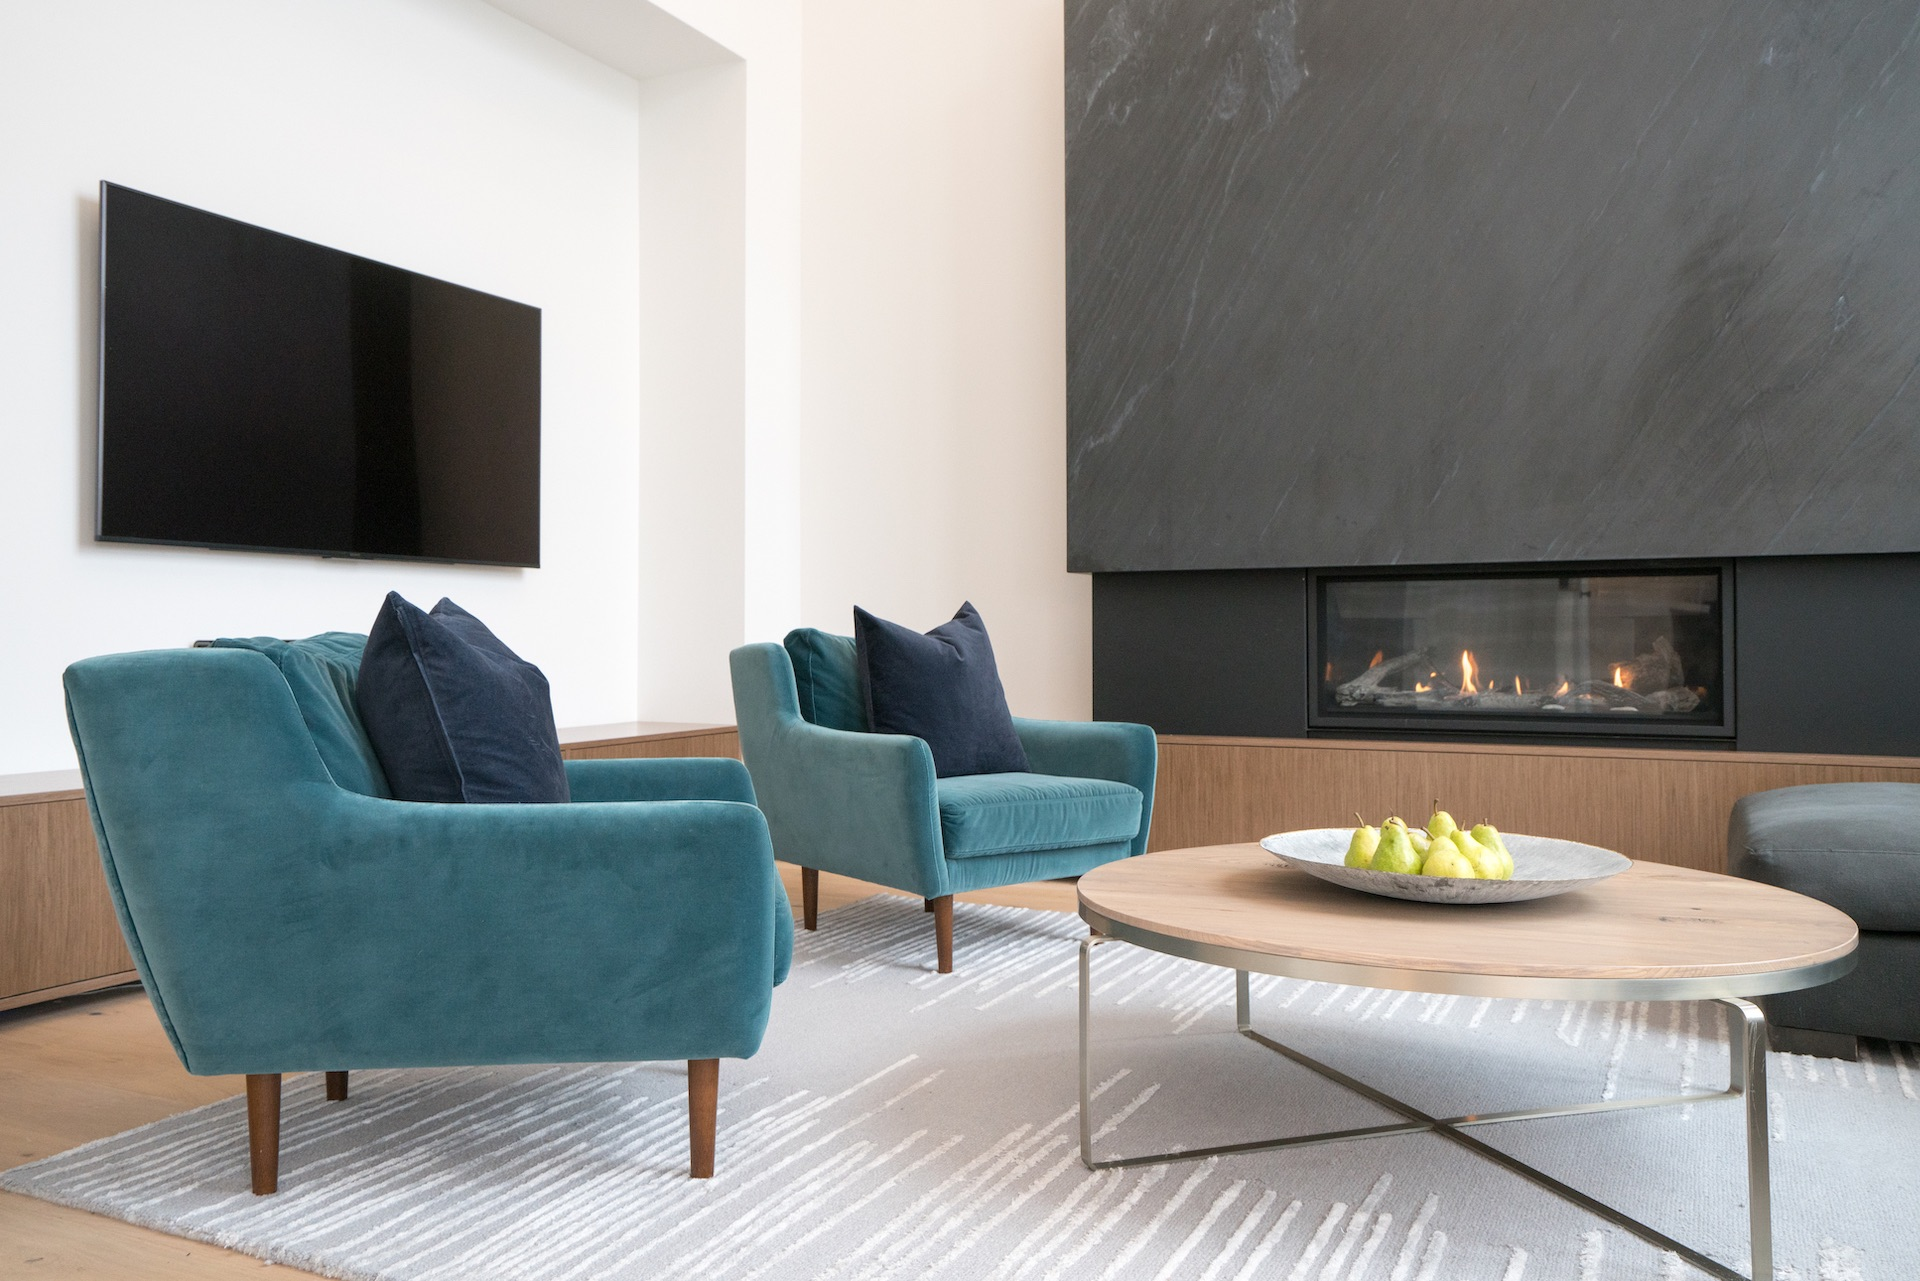 Green chairs and wood coffee table